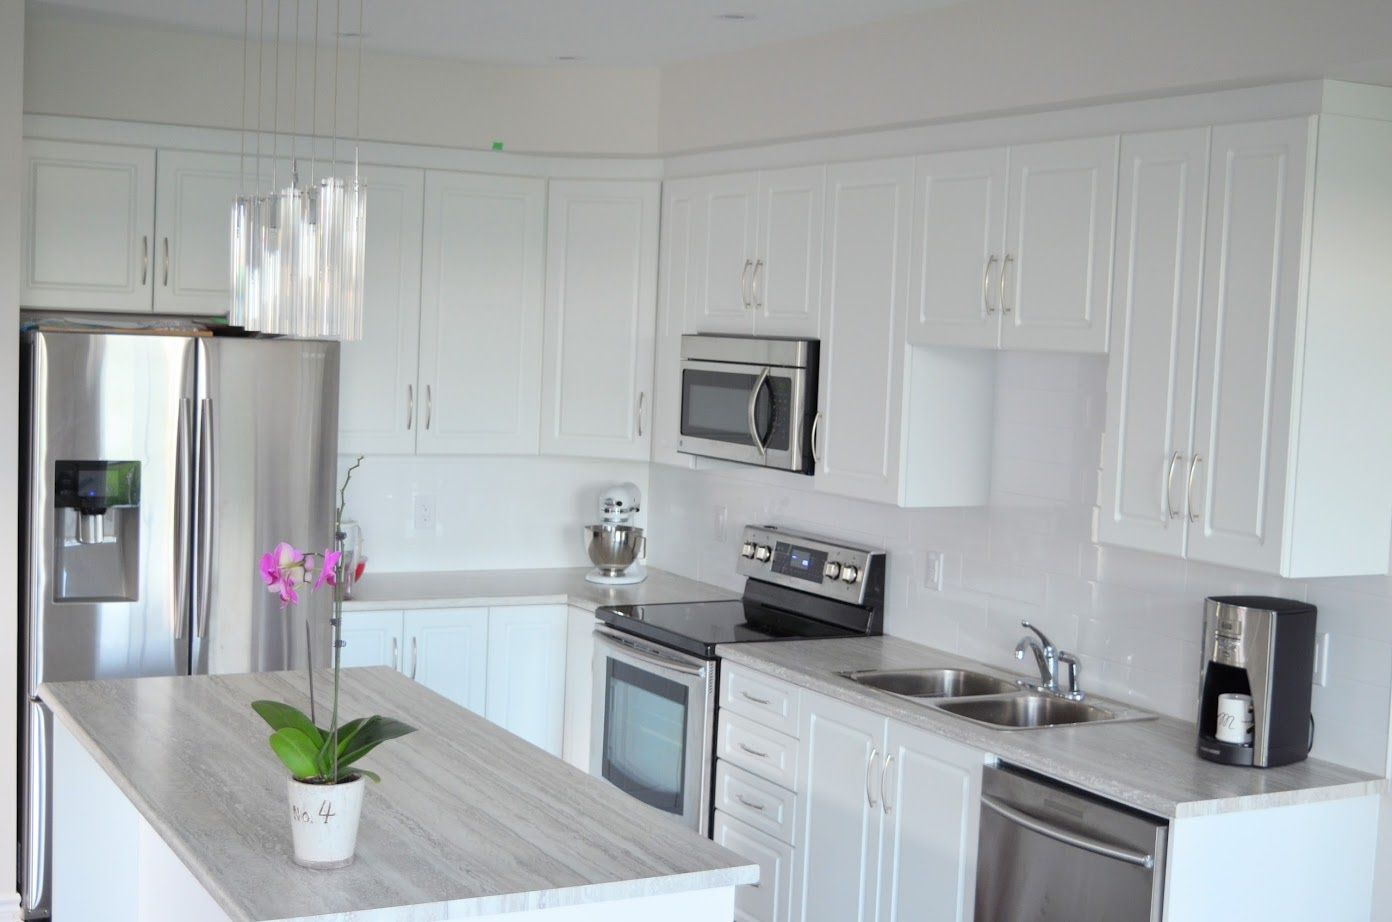 Modern White Kitchen New Build Flawless Space Kitchen Countertops Laminate Laminate Countertops White Cabinets Laminate Kitchen